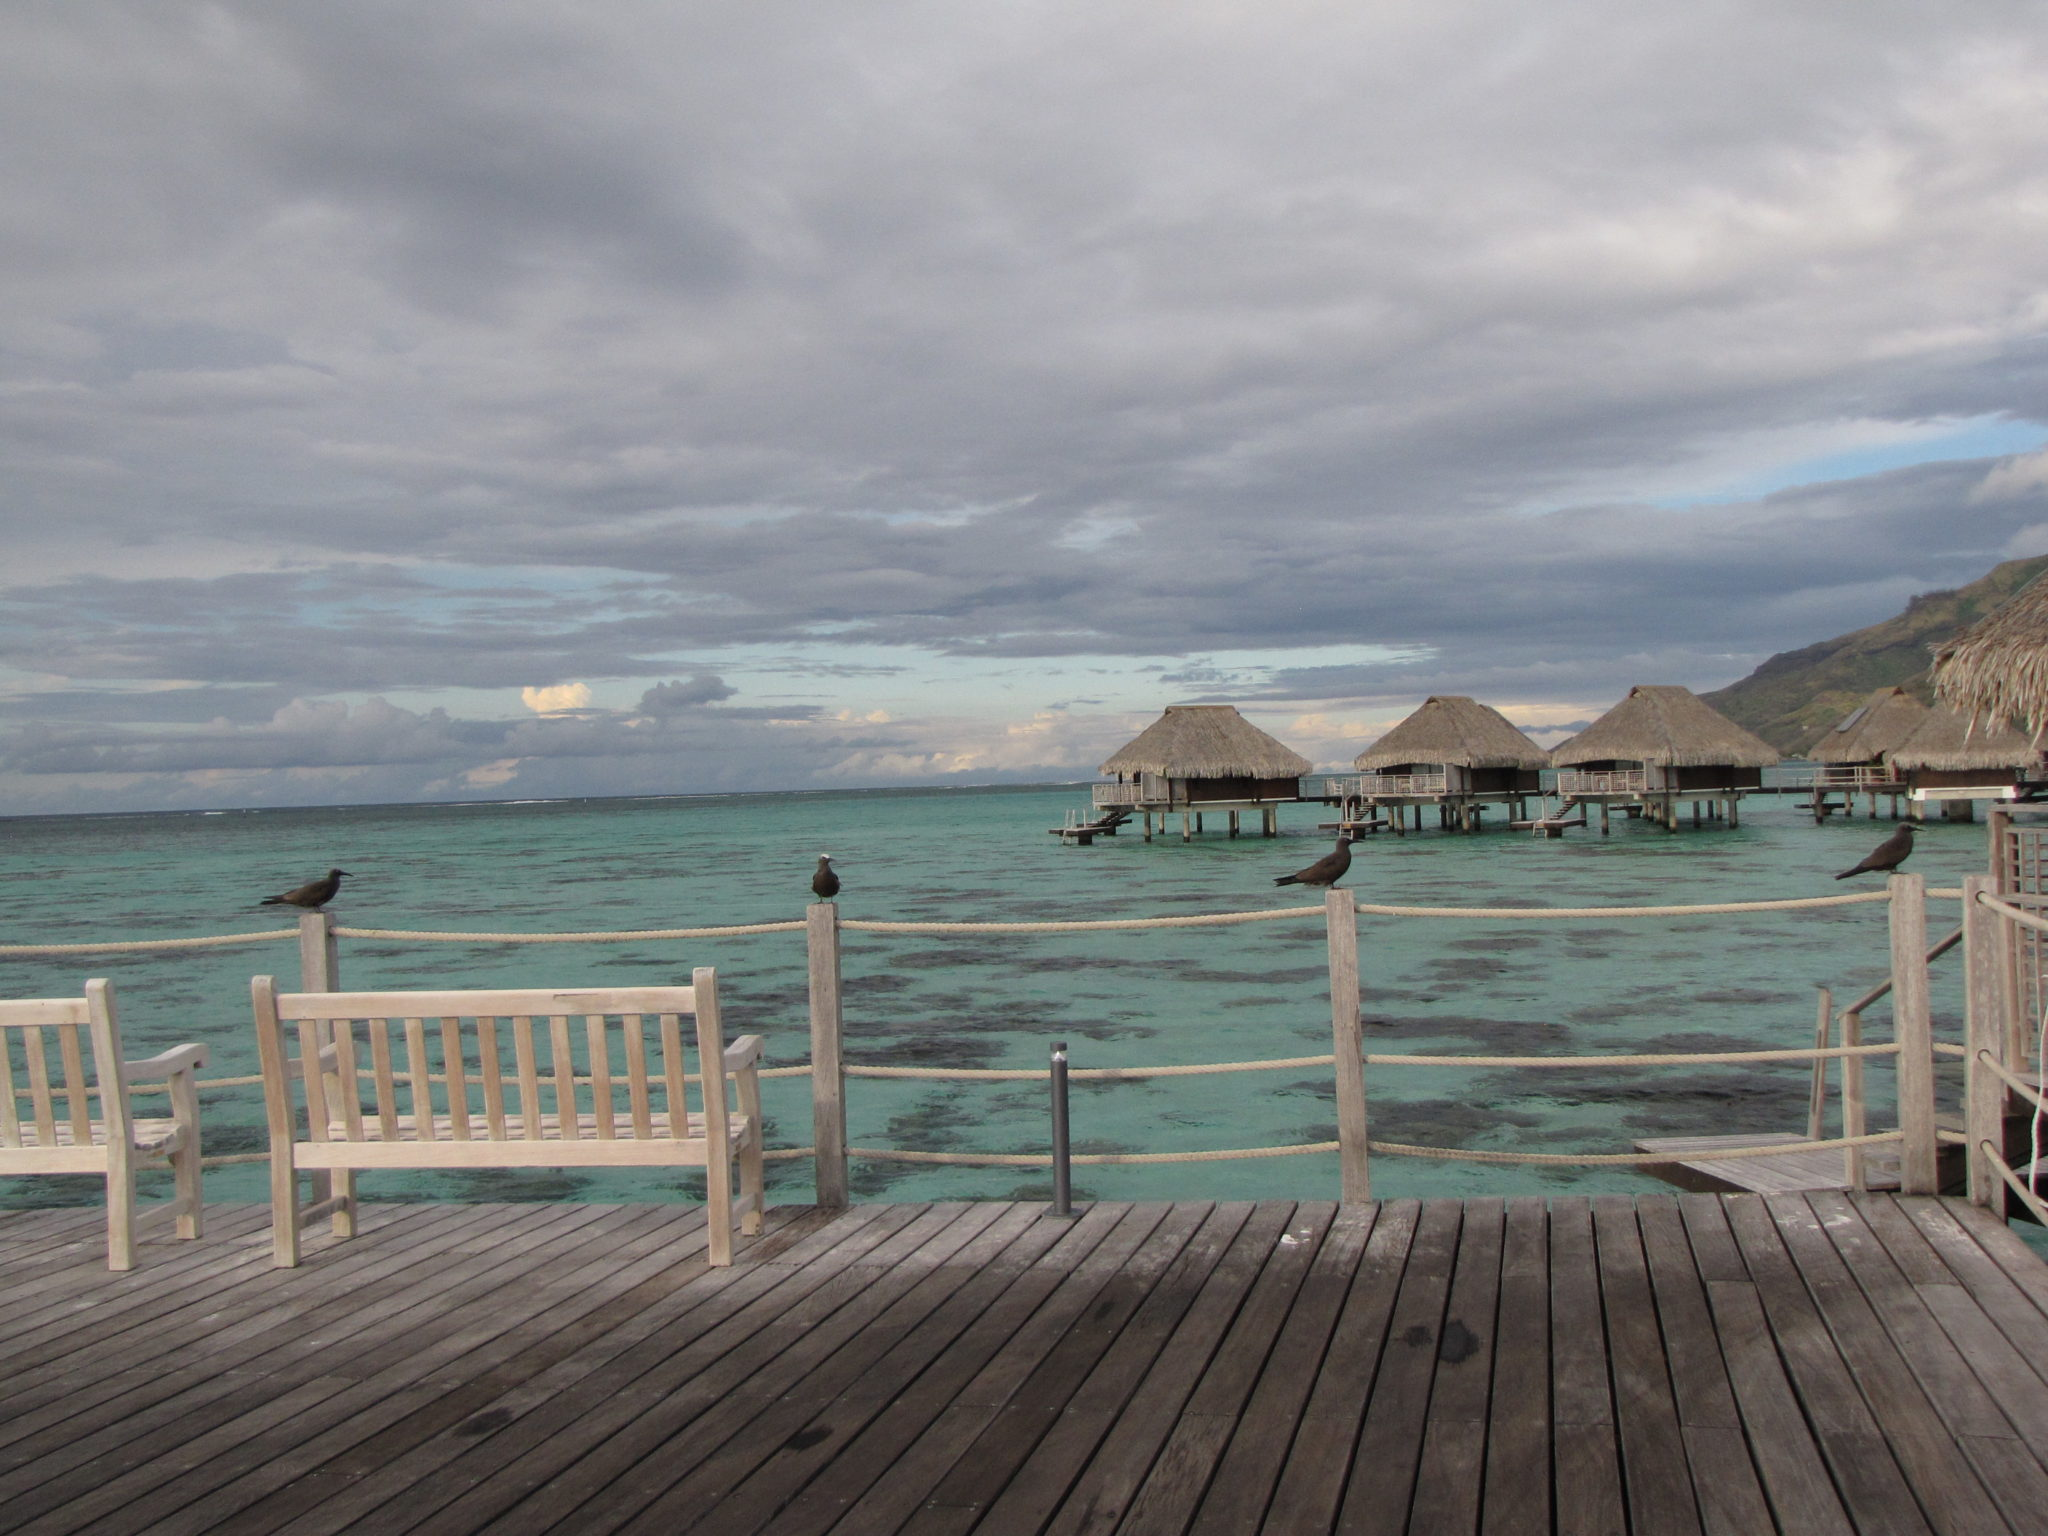 A Fun-filled 4th Day in Mo'orea